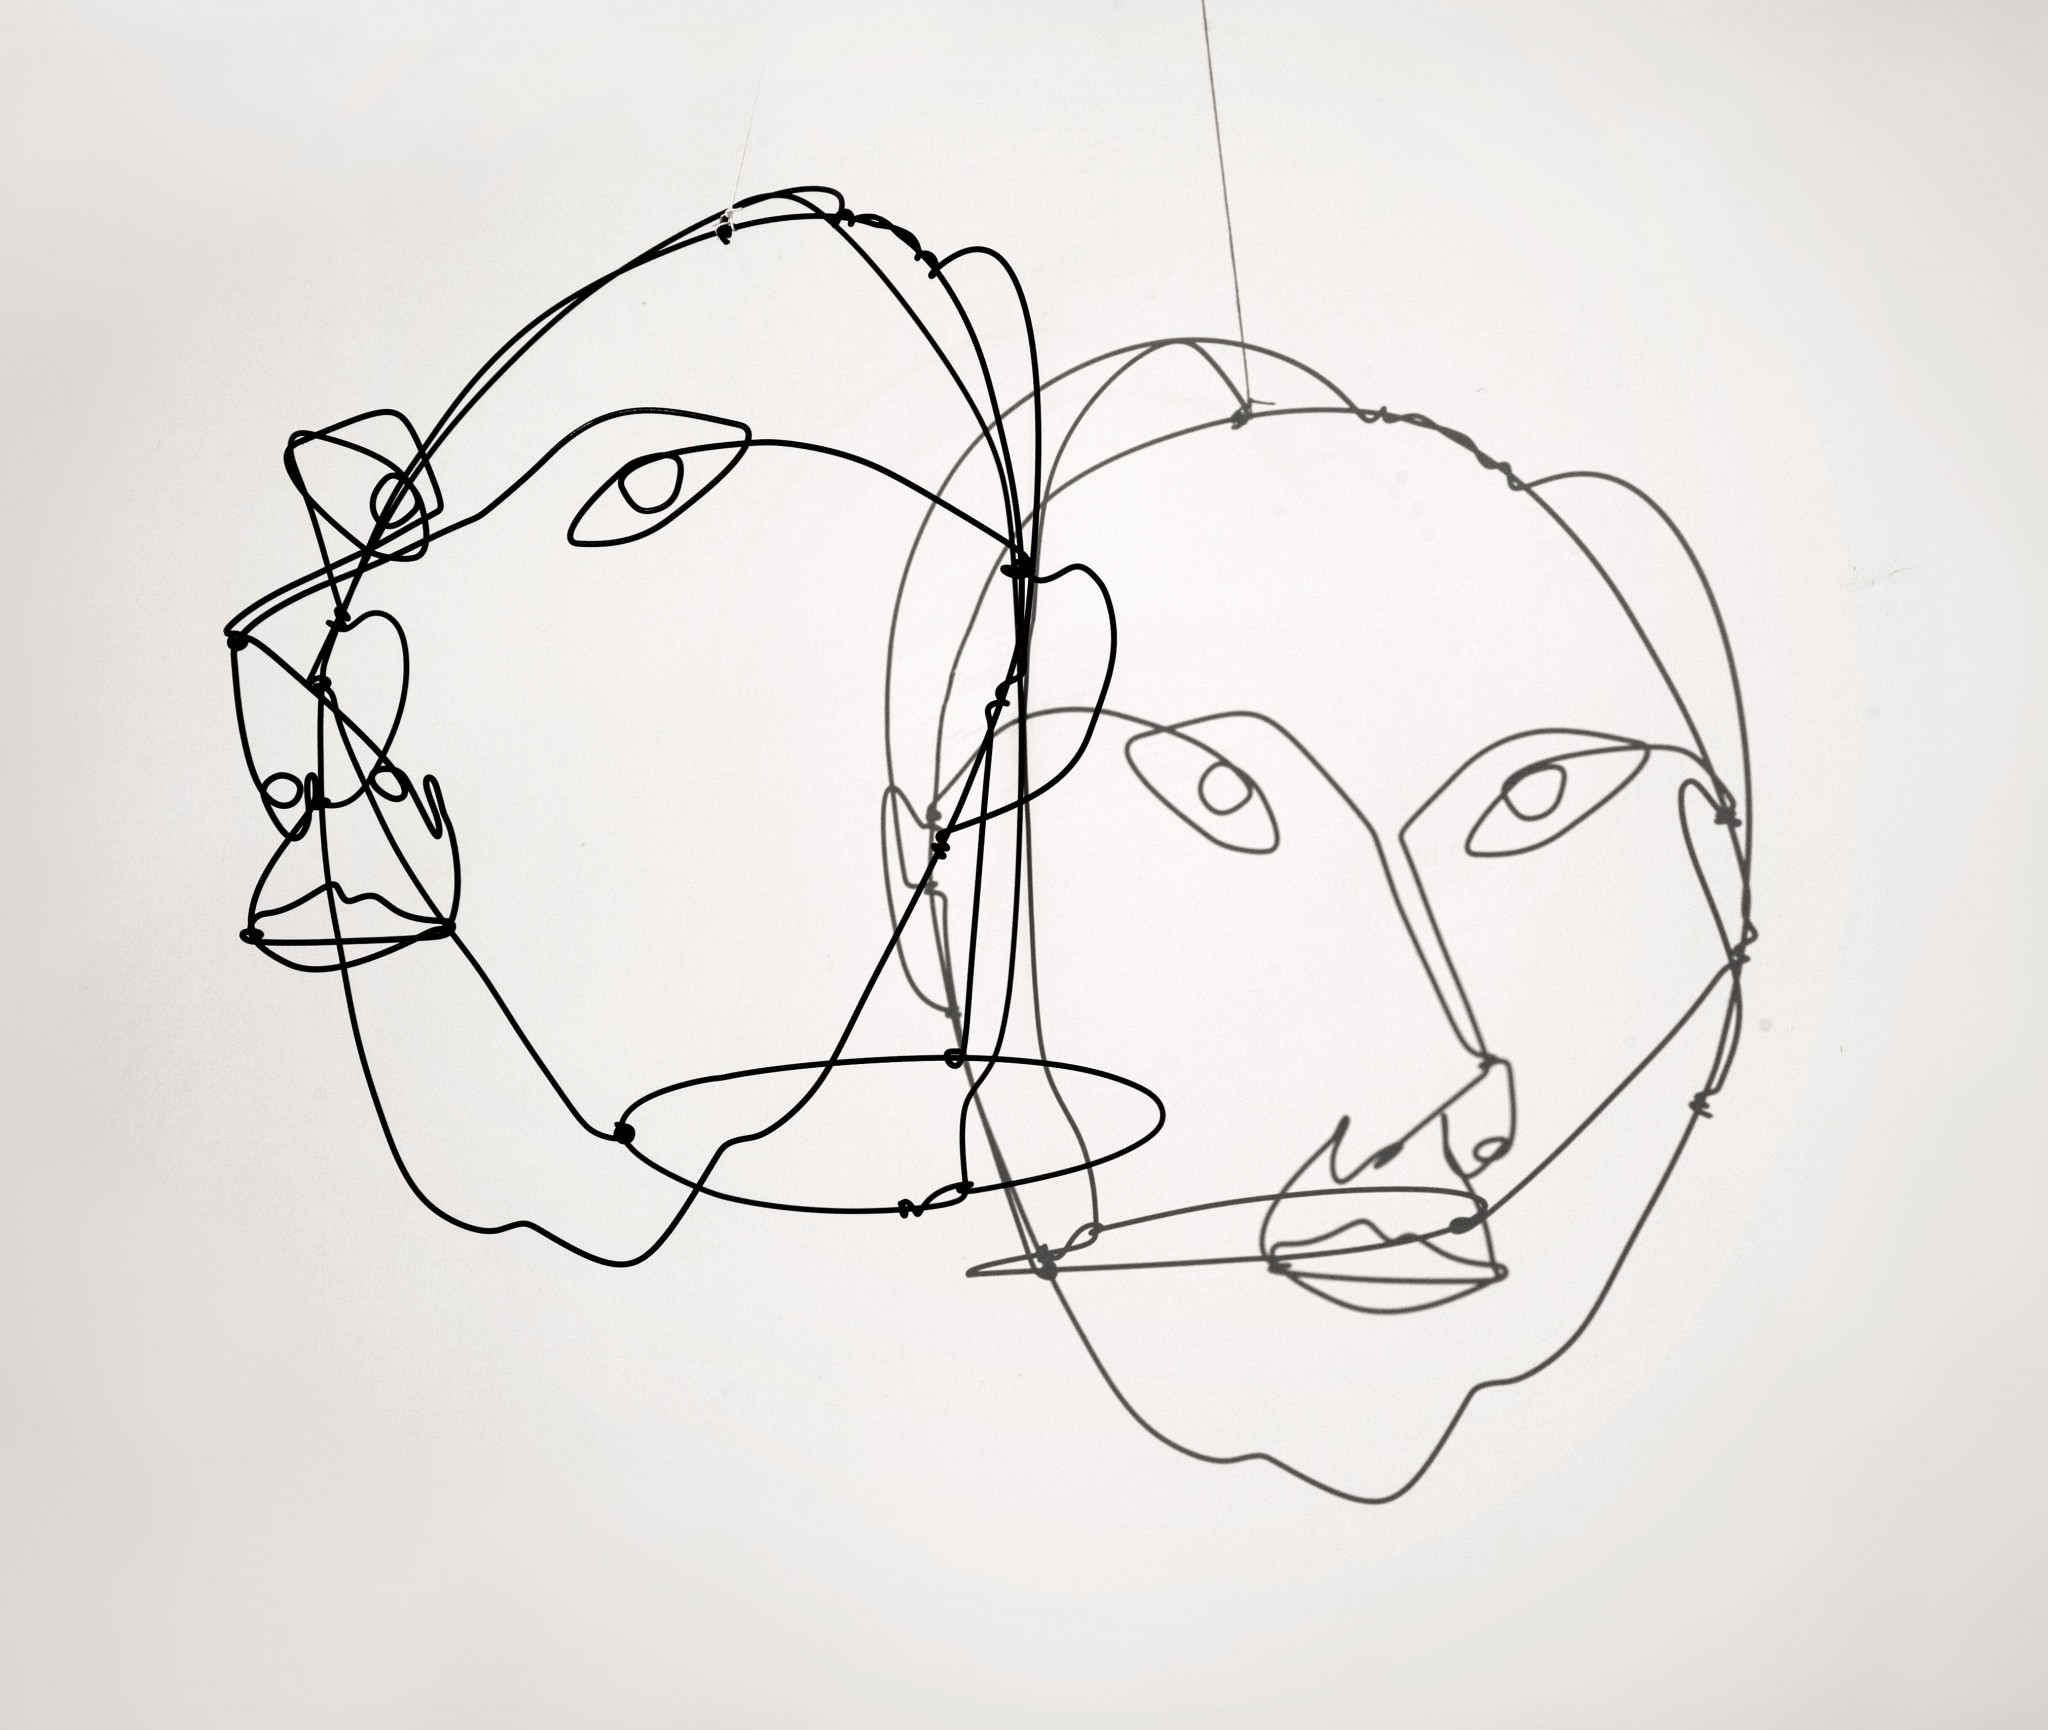 alexander-calder-portrait-of-giovanni-carandente-1967-wire-44-x-32-x-50-cm-calder-foundation-licensed-by-dacs-uk-courtesy-ronchini-gallery-and-museo-carandente-palazzo-collicola